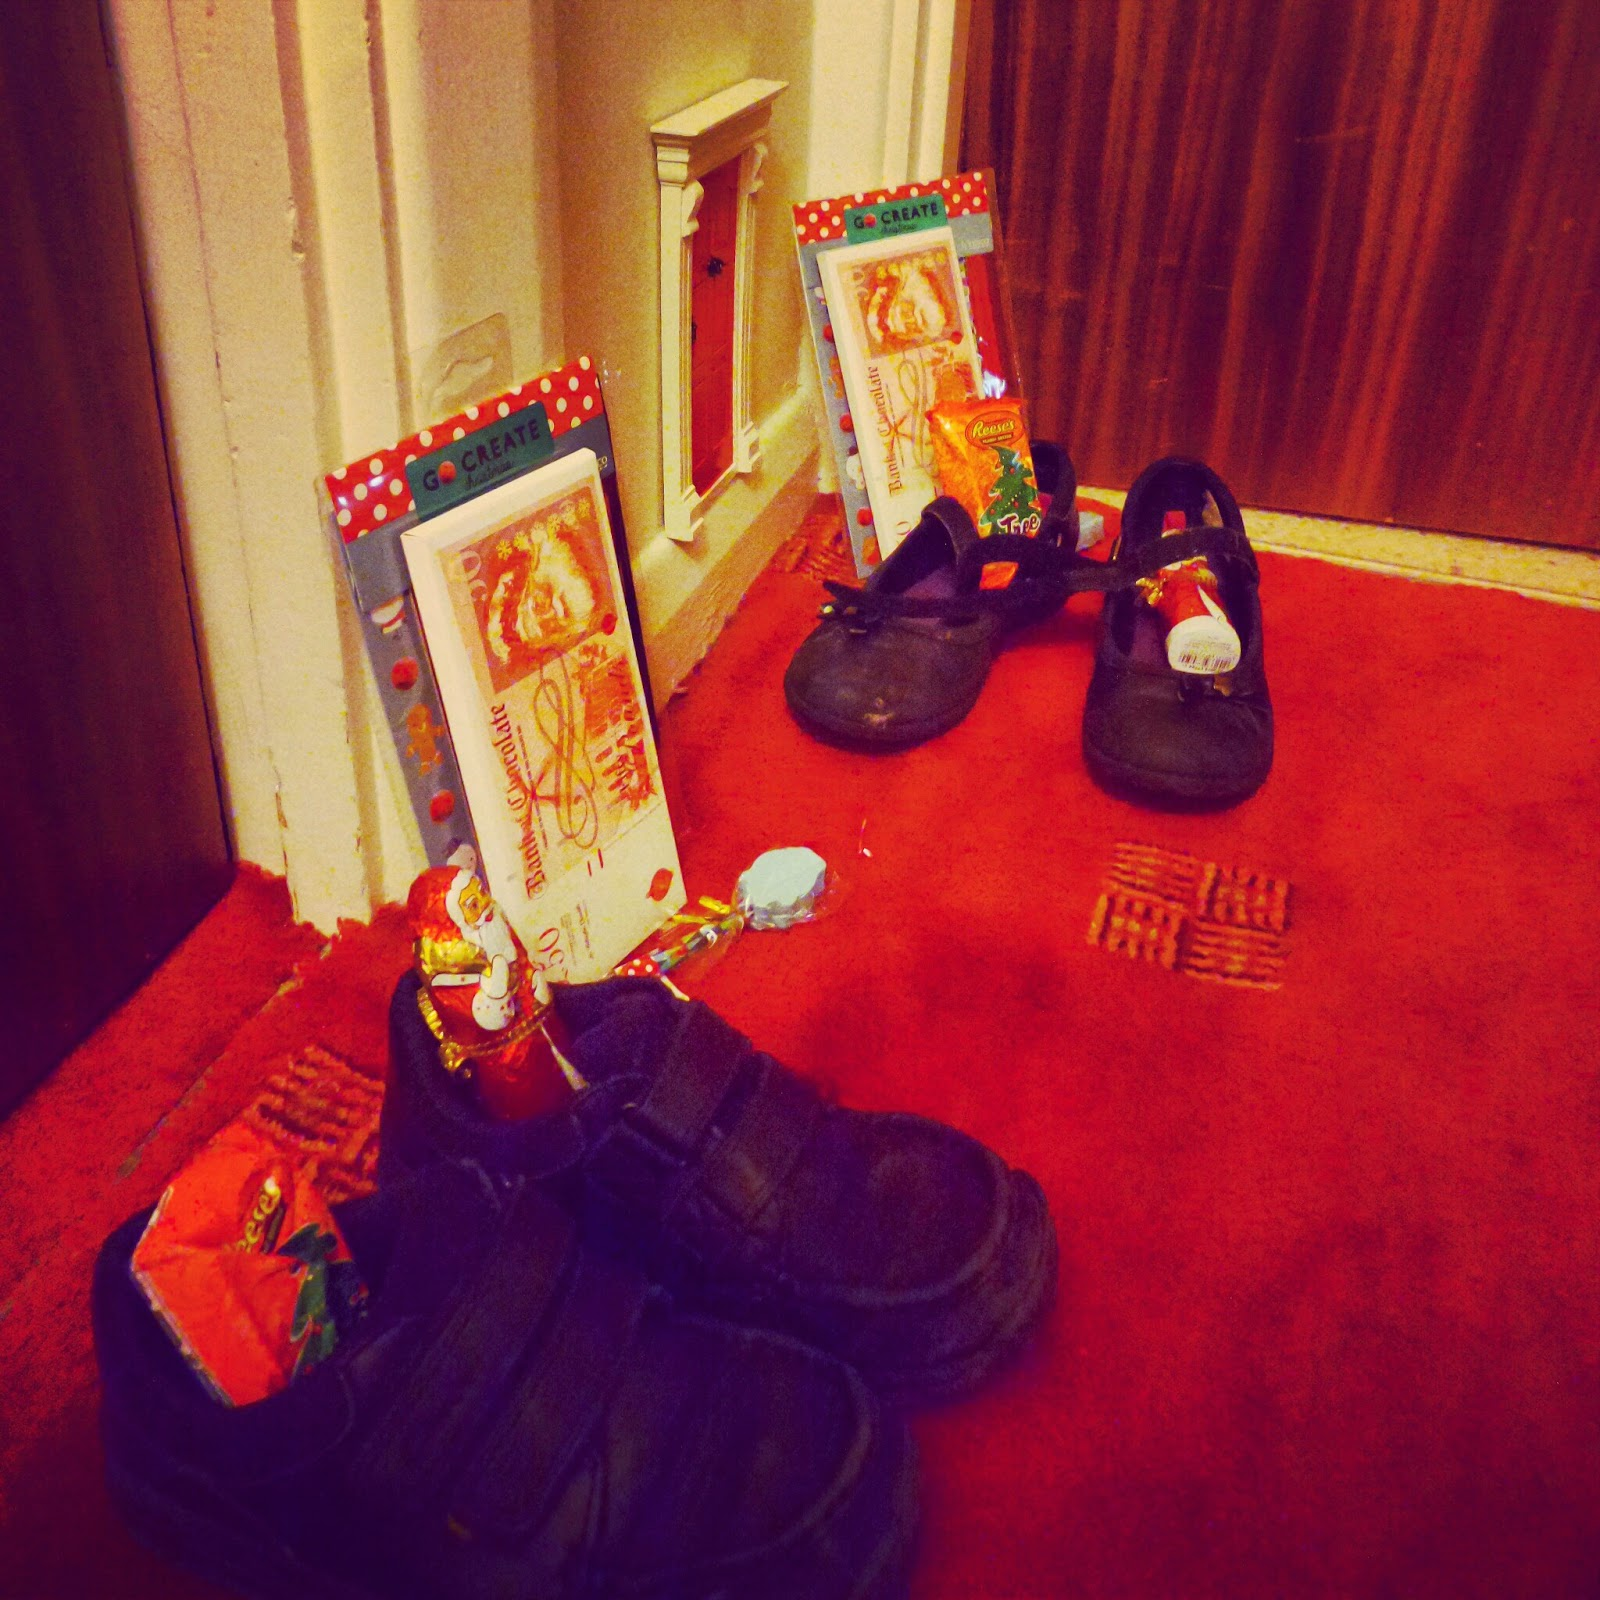 Sinterklaas left gifts for Top Ender and Big Boy in their shoes!